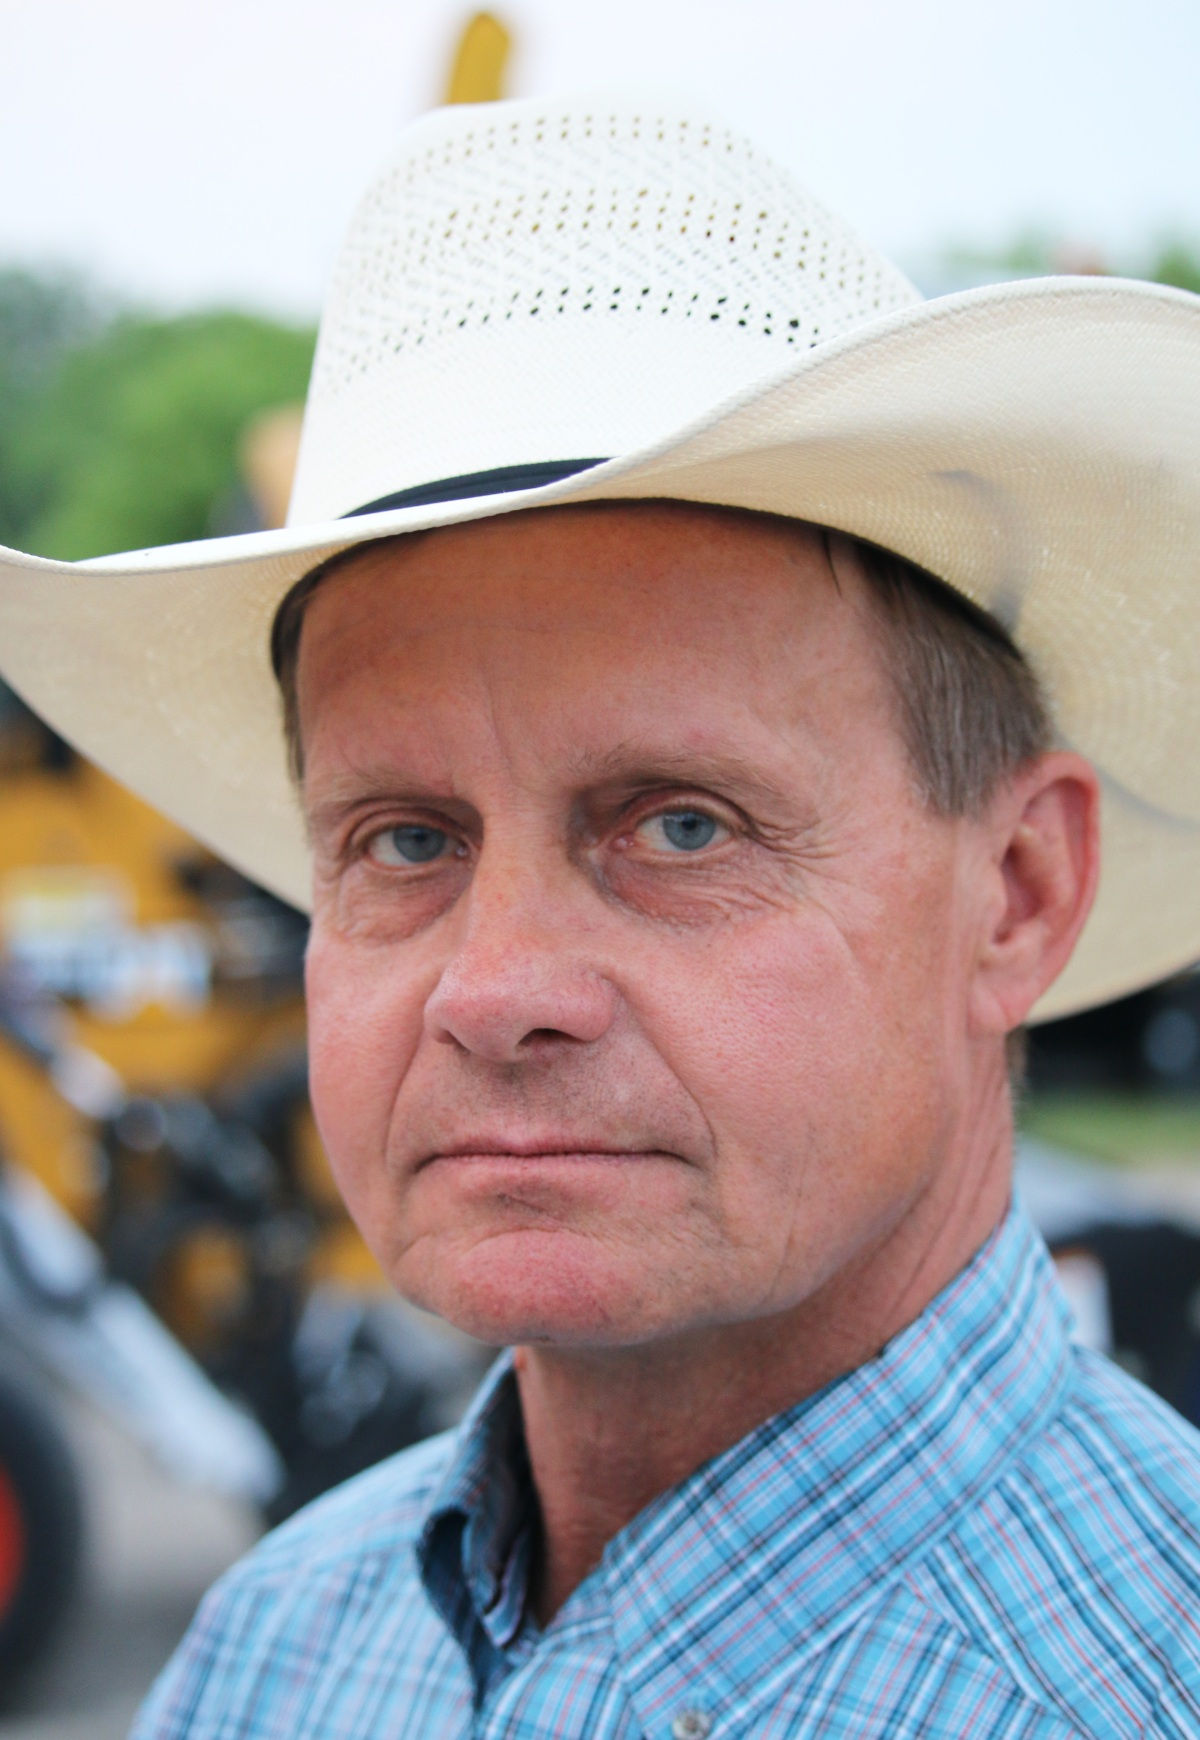 Bowman's Steve Brooks balances ranching with role as ND Stockmen's Association president